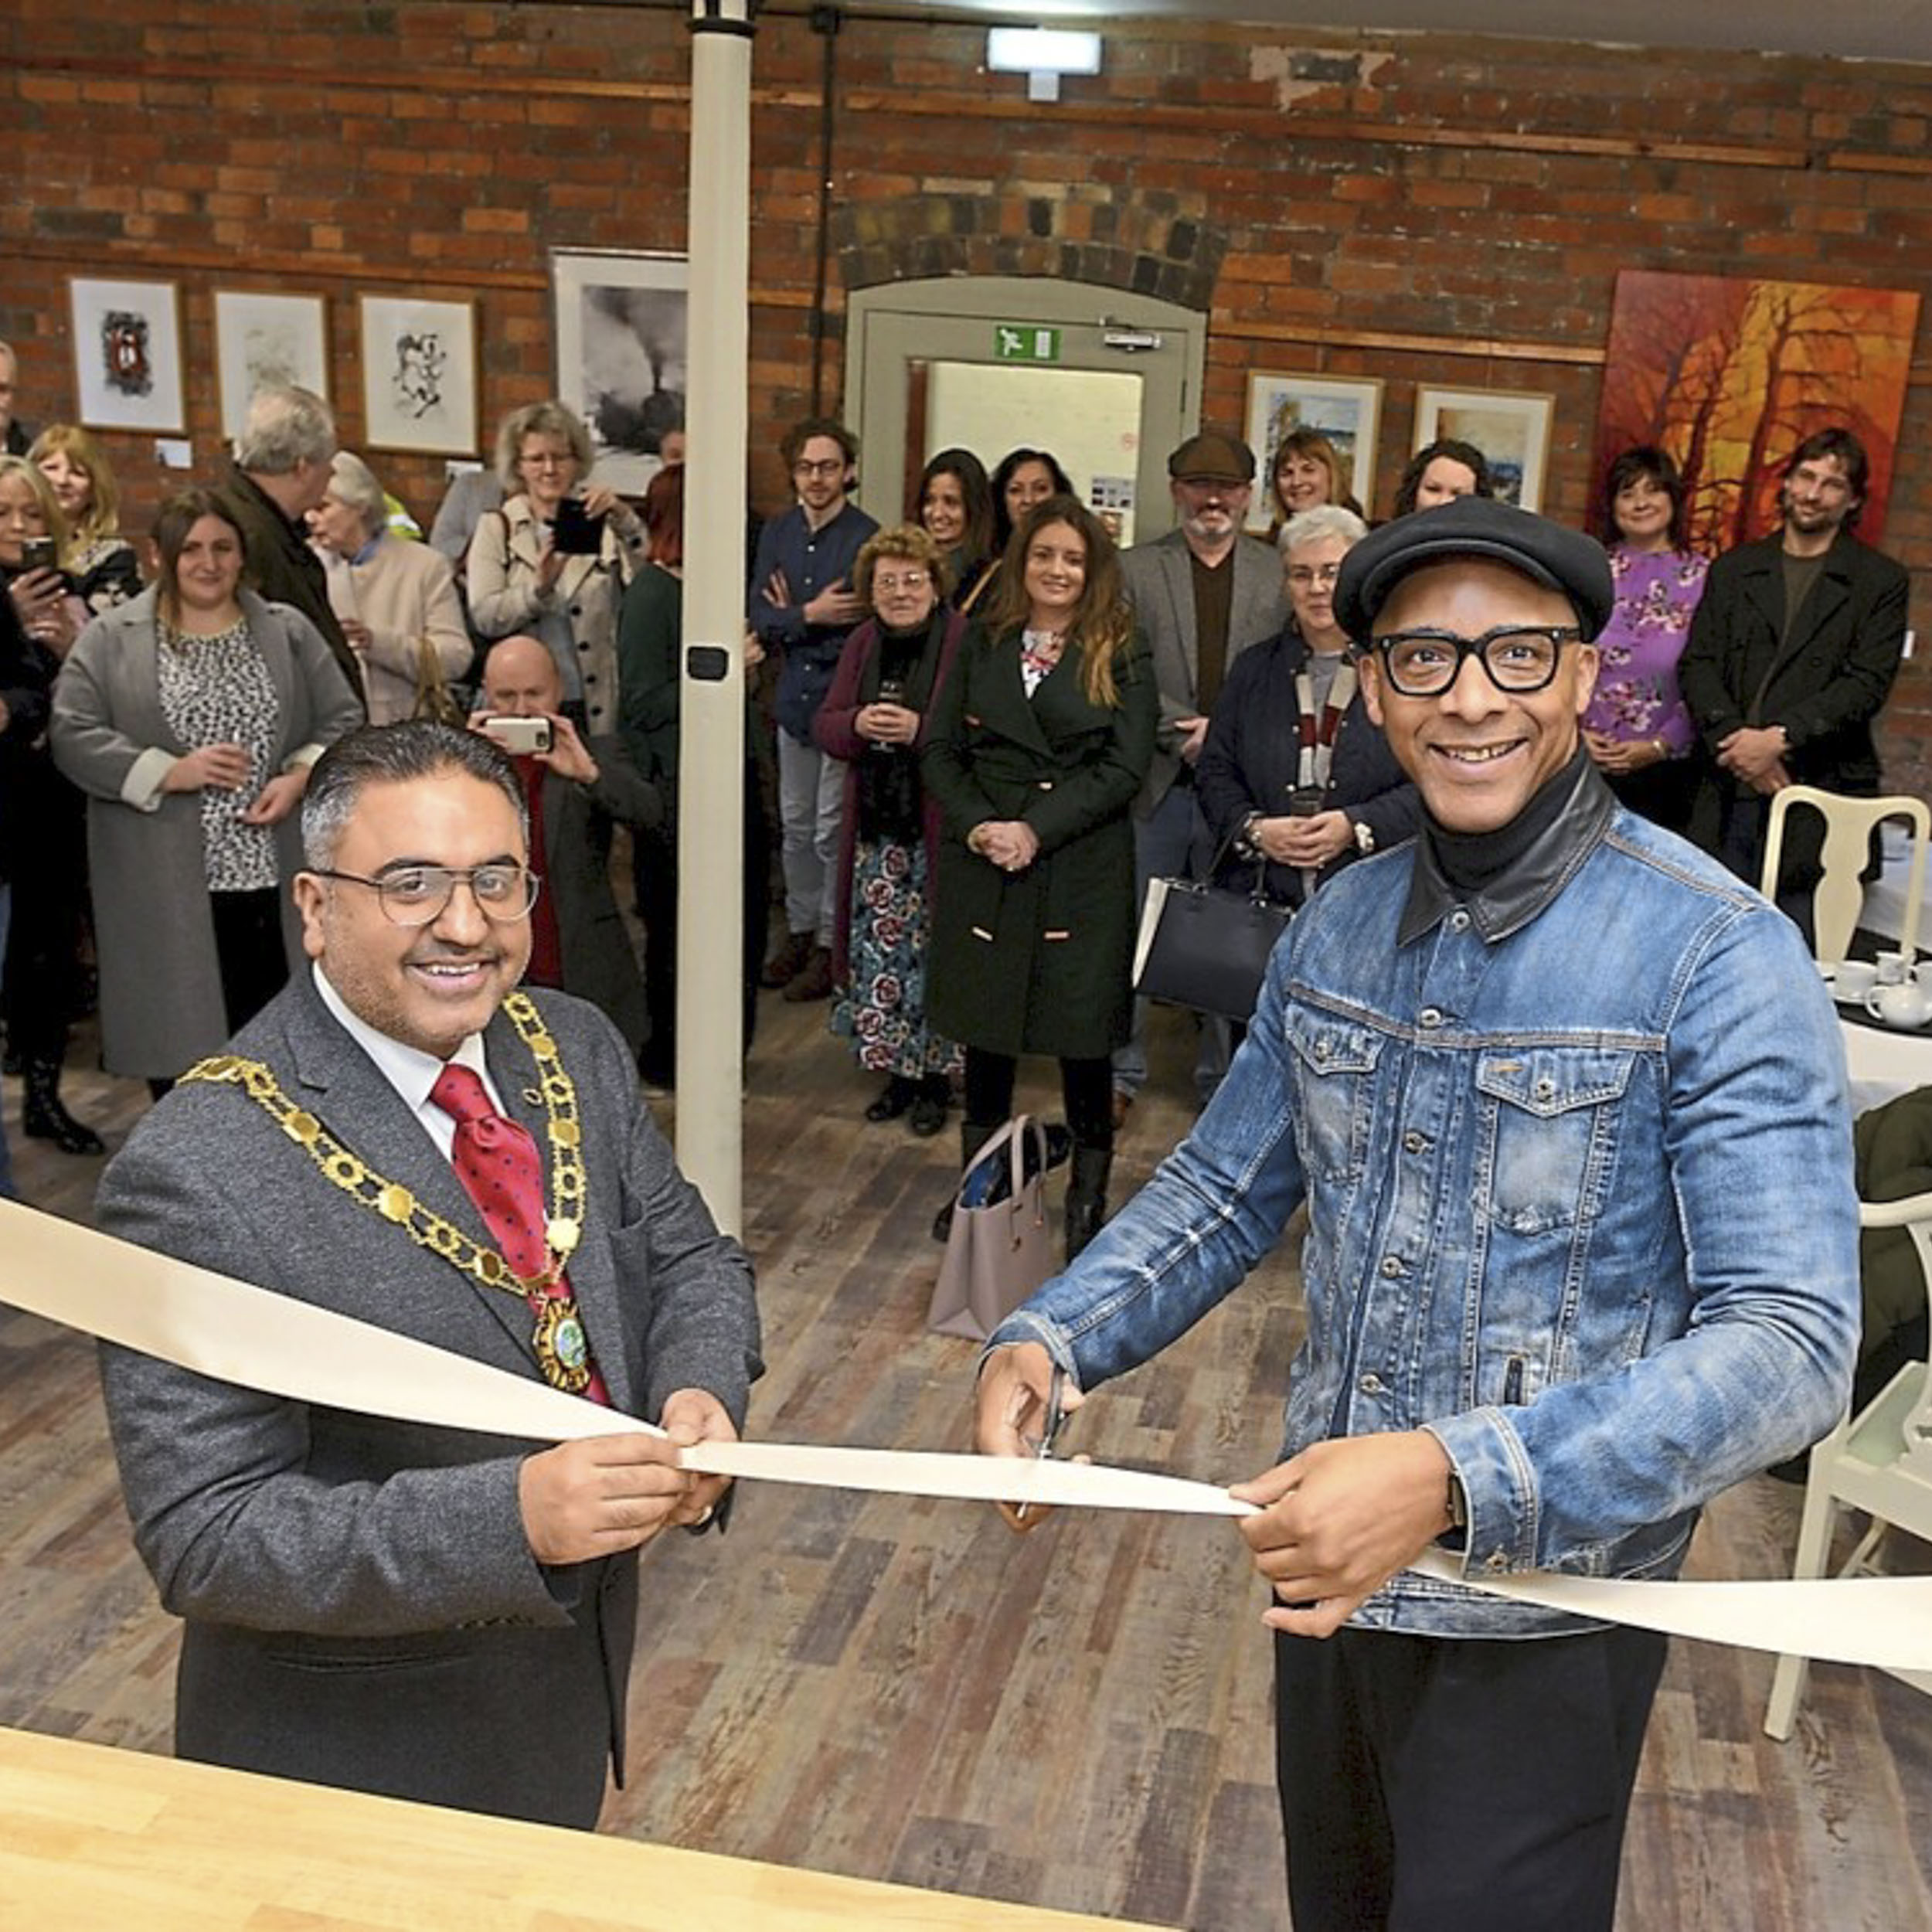 Maws Craft Centre - It was really thrilling to be asked to help at the opening of the Tile Press Cafe at the Maws Craft Centre in Ironbridge; Maws Trading has been re-invigorating and re-launching the venue as a creative hub for Shropshire, and giving the opportunity for amateurs and professionals alike to come together under one roof to make things, share skills and sell products. We need to support such initiatives and make sure more of them open up across the UK.